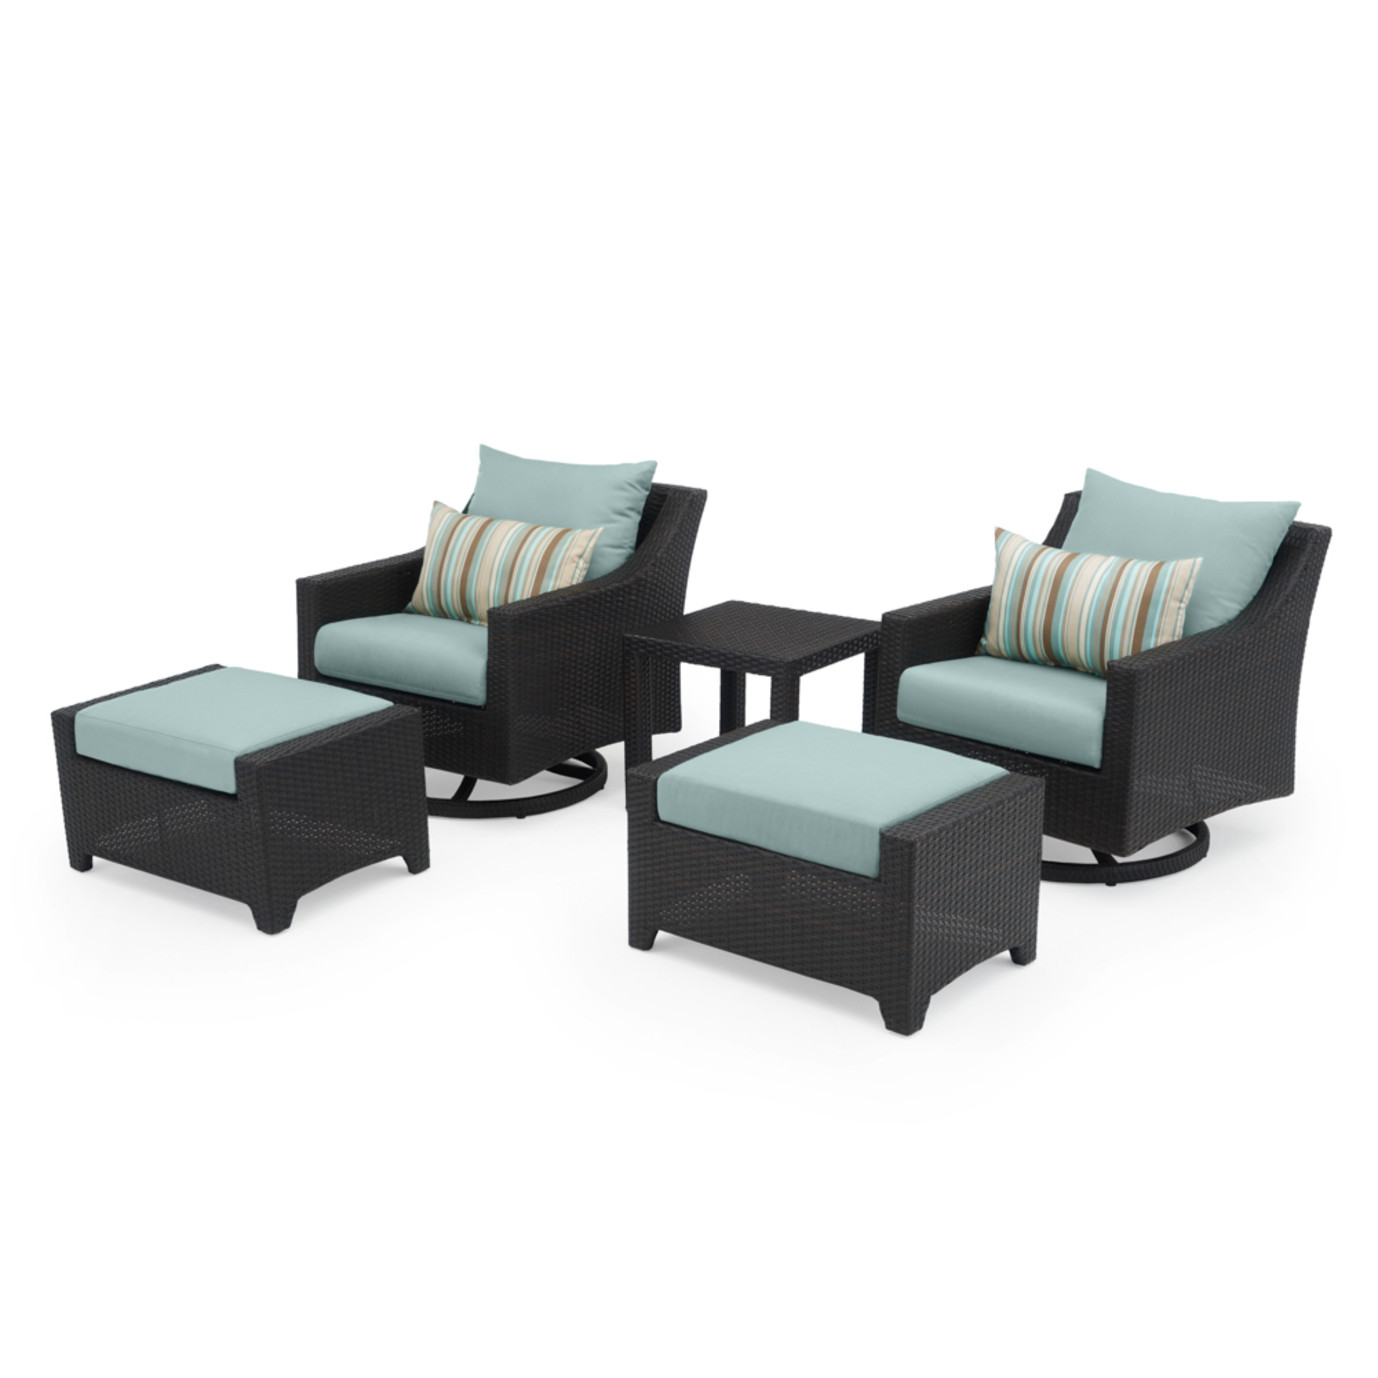 Deco™ 5pc Motion Club & Ottoman Set - Bliss Blue